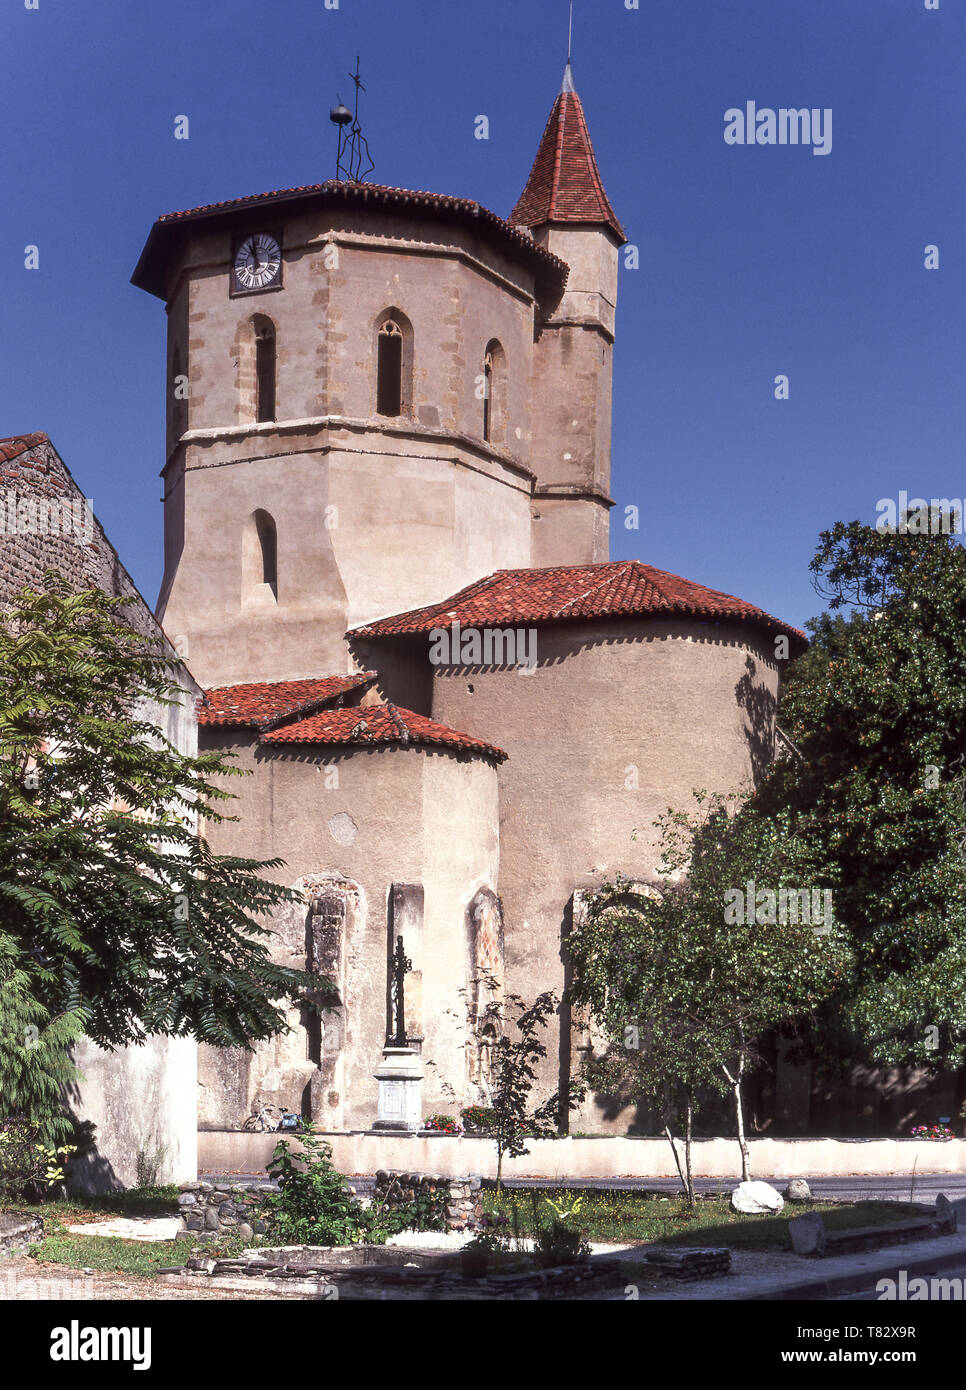 The Church of the Templars in the market town of Maubourguet in the Department of Hautes-Pyrenees. - Stock Image